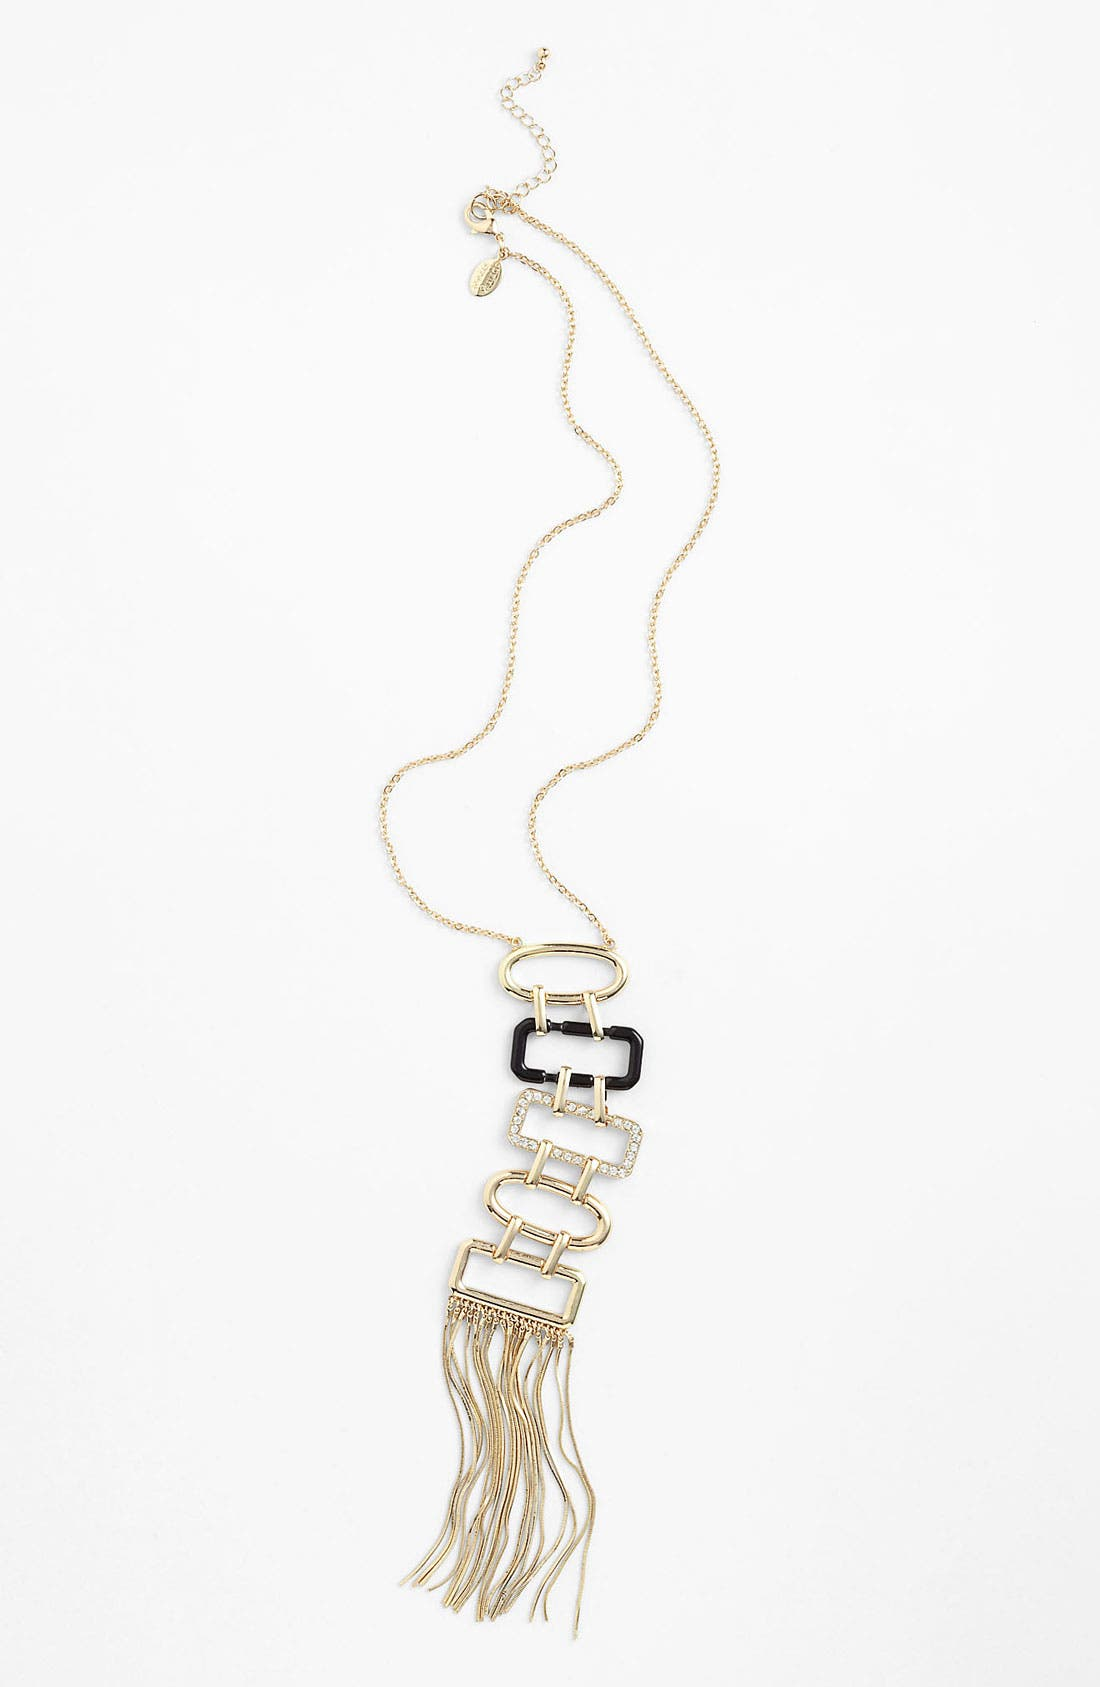 Long Tassel Pendant Necklace,                             Main thumbnail 1, color,                             Gold With Black